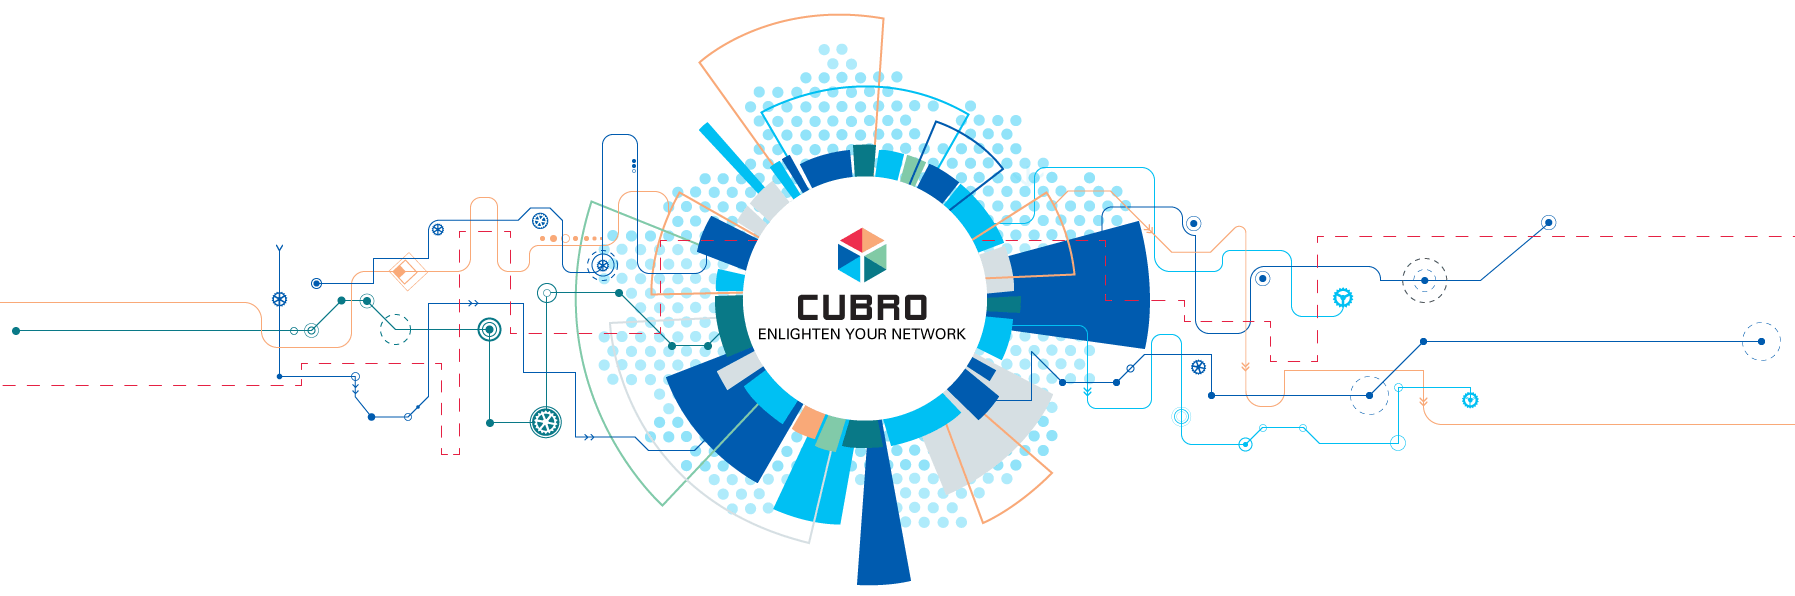 Cubro - enlighten your network